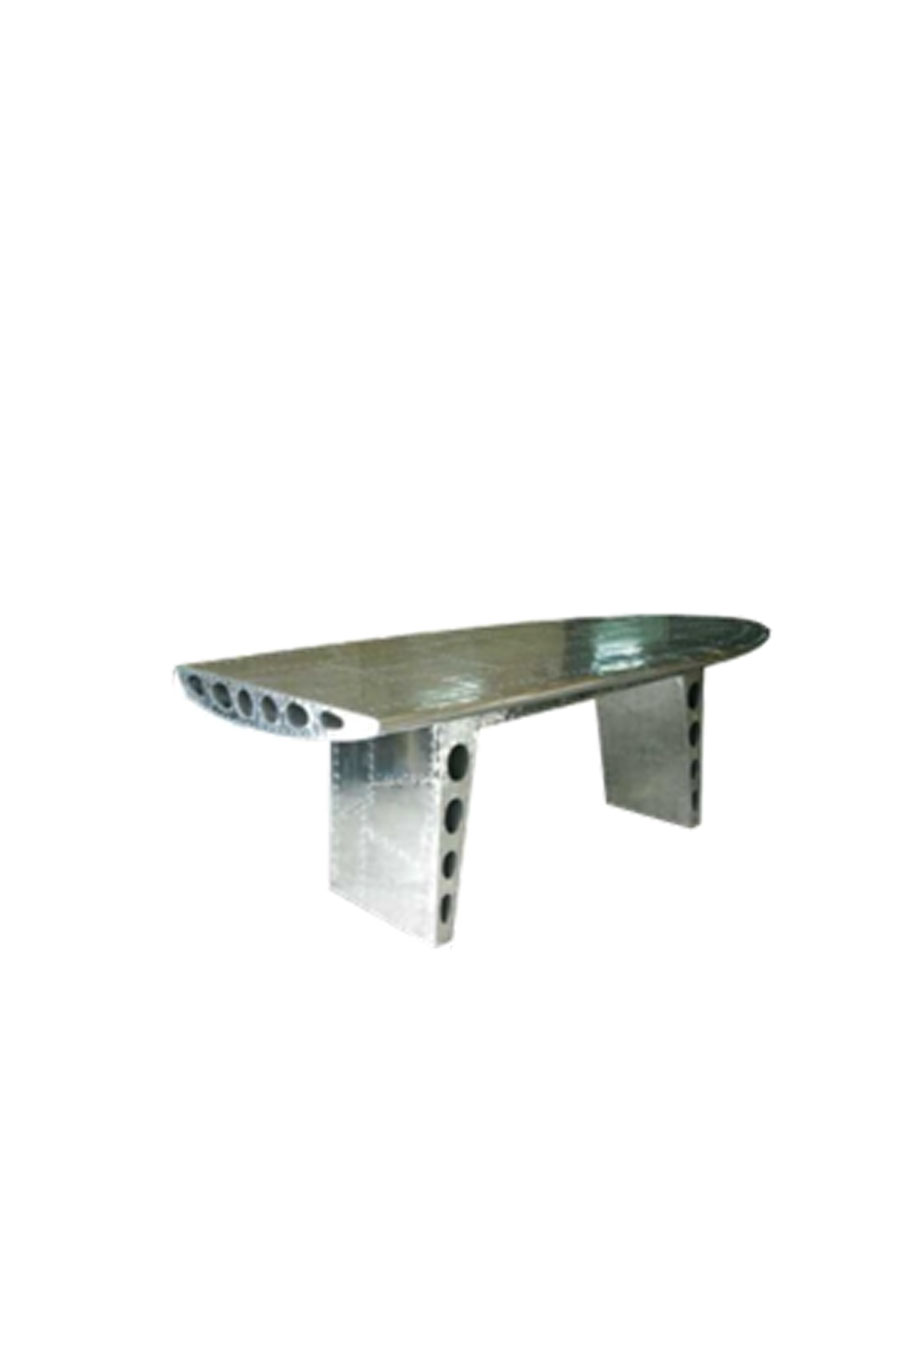 airplane-wing-table-220-m-4064.jpg